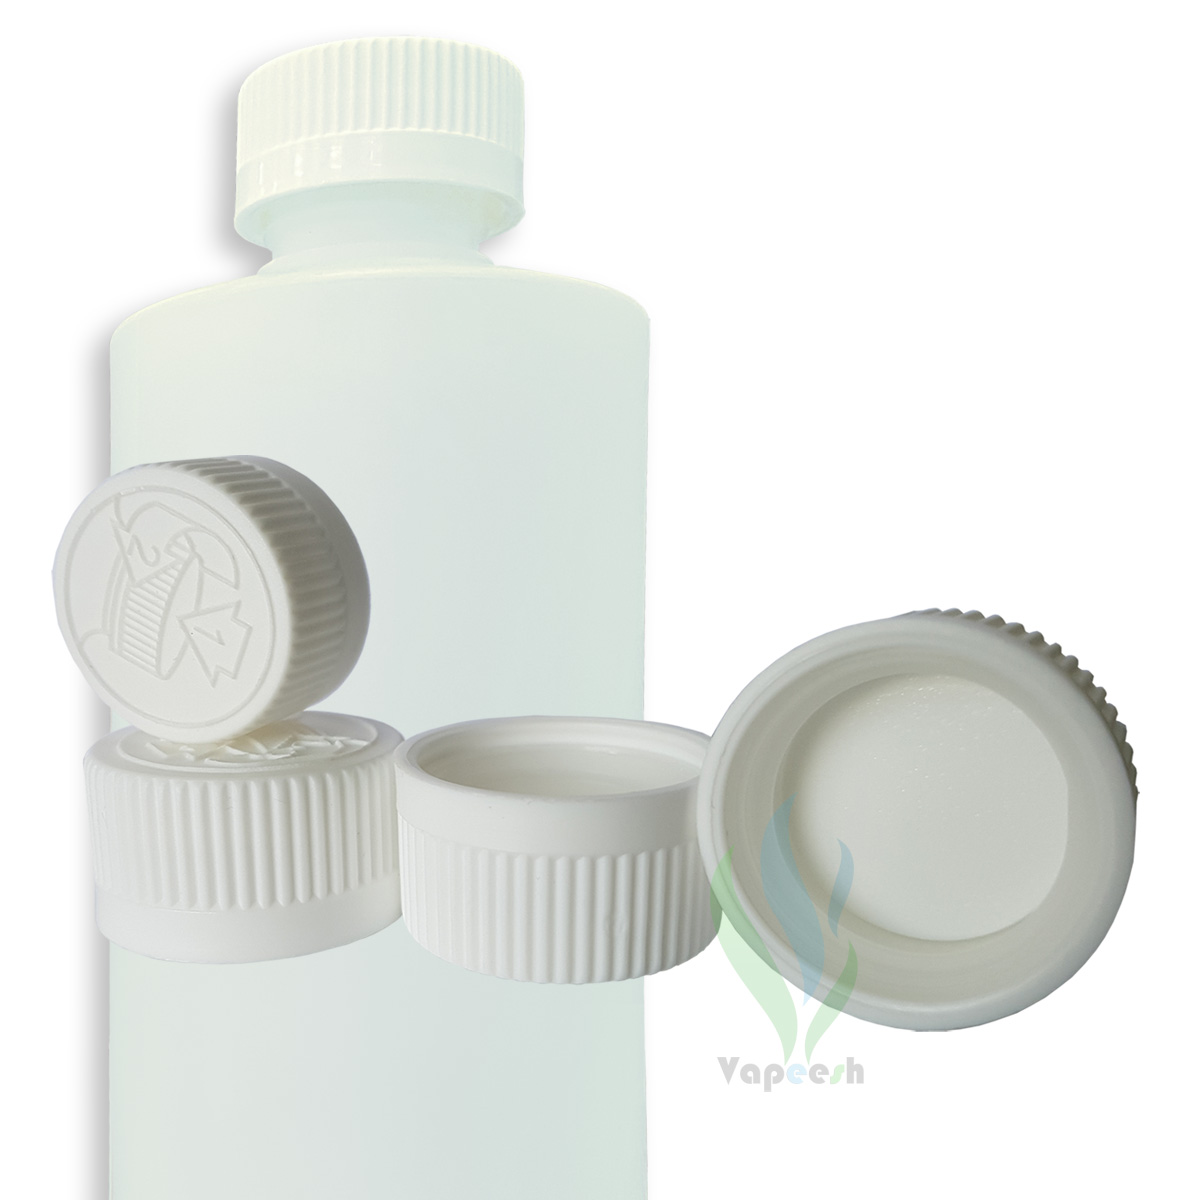 HDPE natural cylinderical bottle with white Child-Resistant closure & 4 white Child-Resistant closures